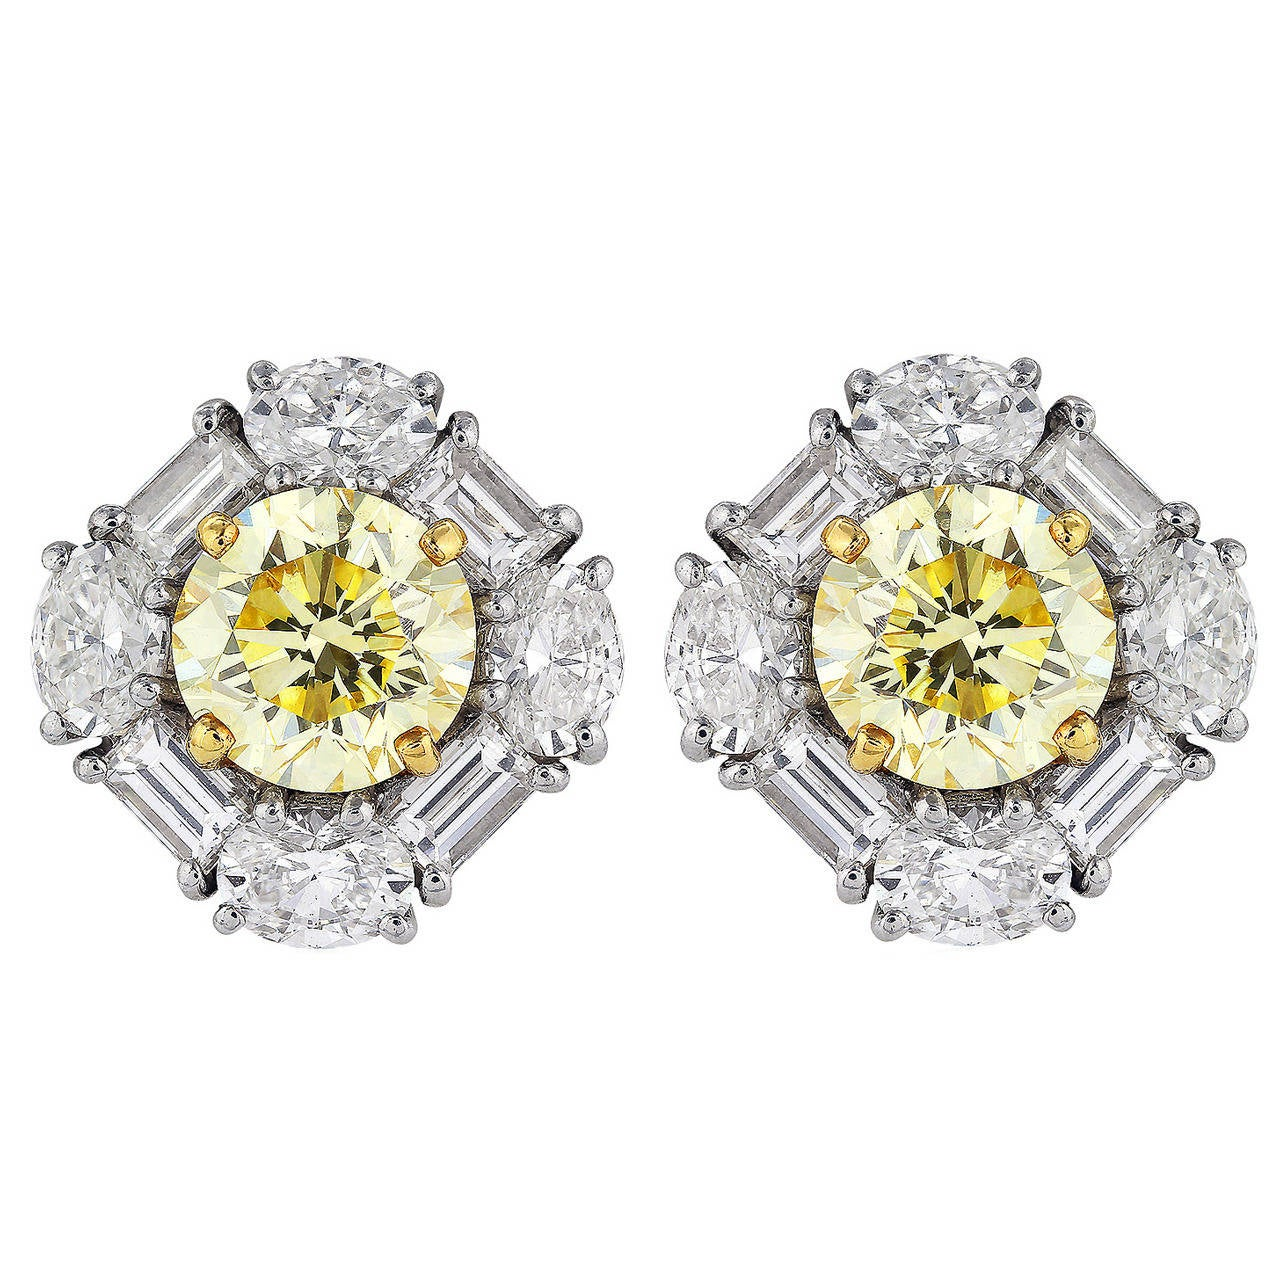 3.78 Carat Canary Diamond Cluster Earrings